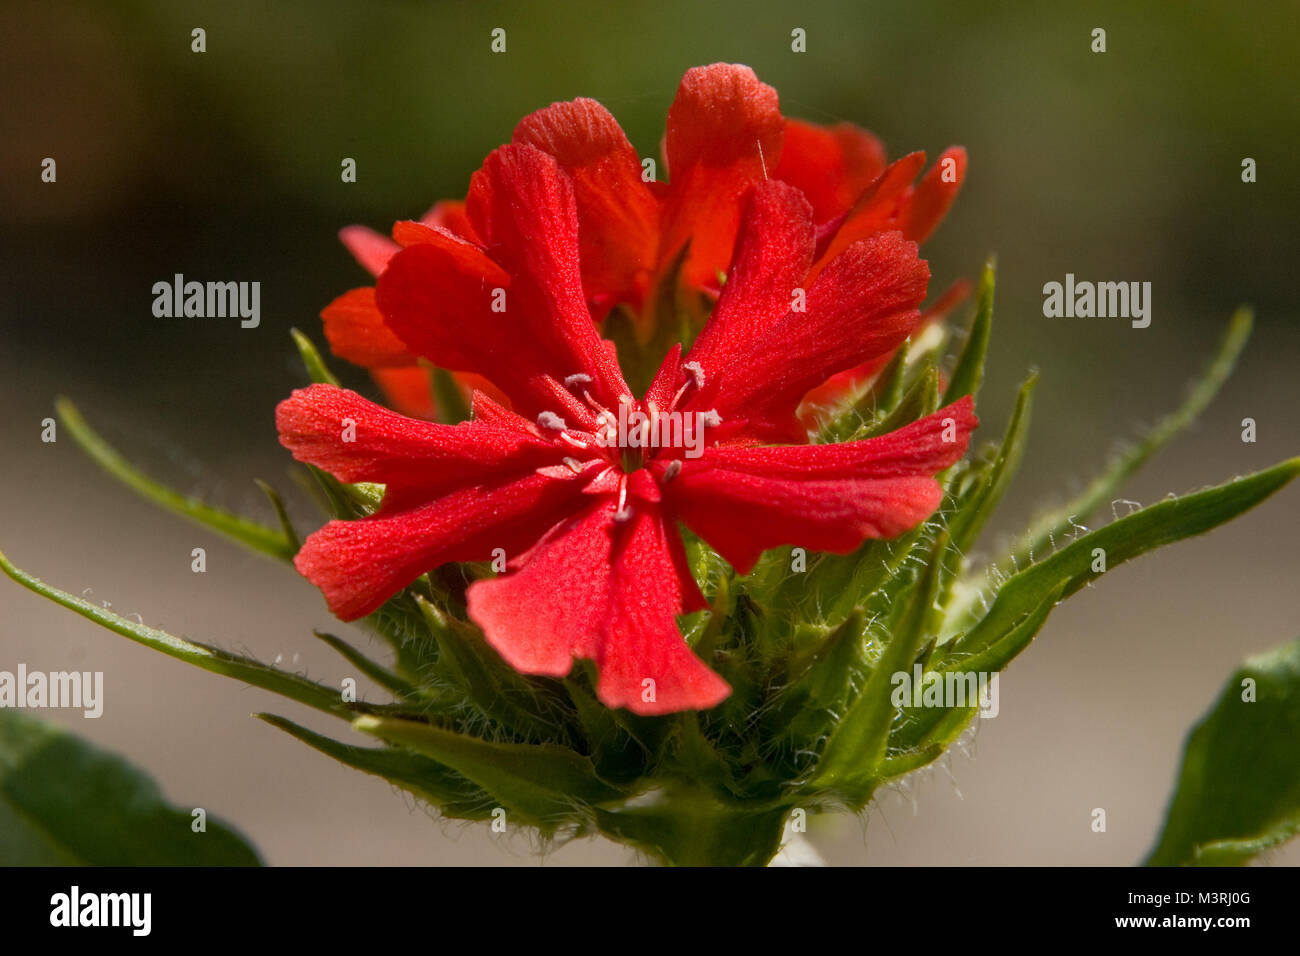 Spiky red flower stock photos spiky red flower stock images alamy vivid red flower macro in the sun with beautiful petals and stamens sharp focus on mightylinksfo